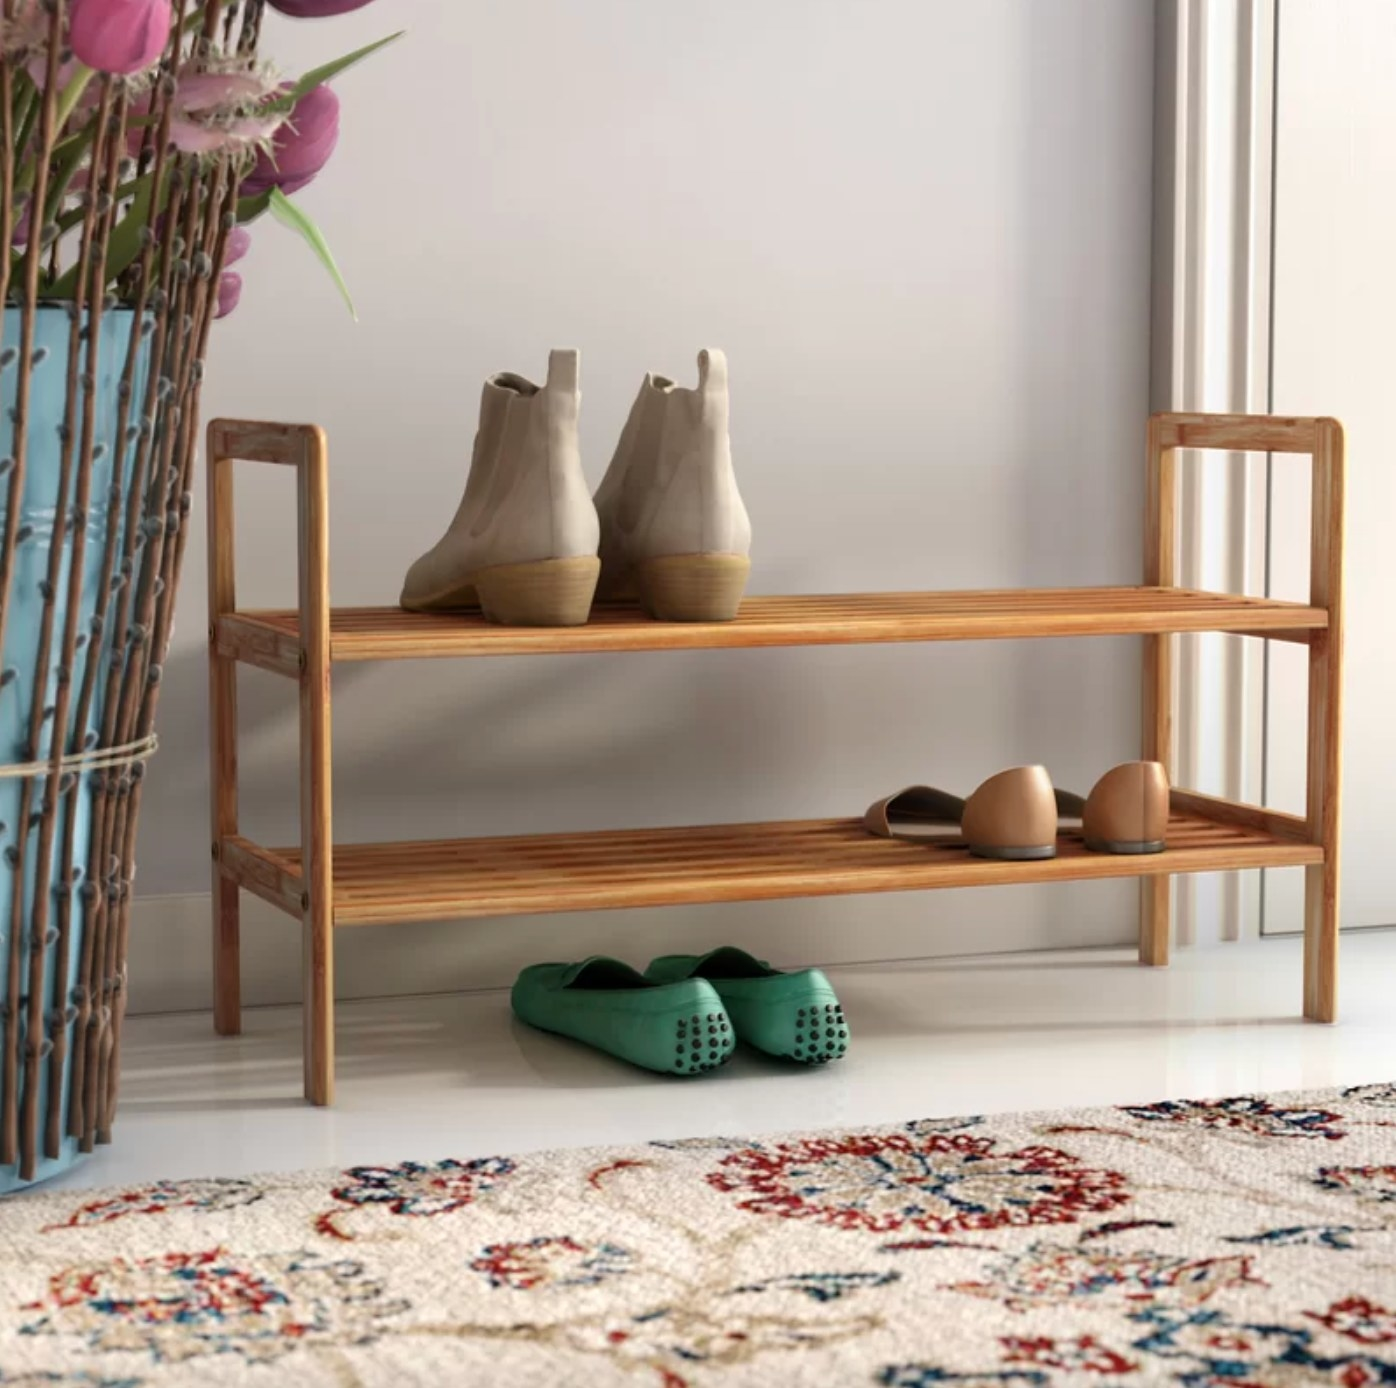 The two-tier shoe rack